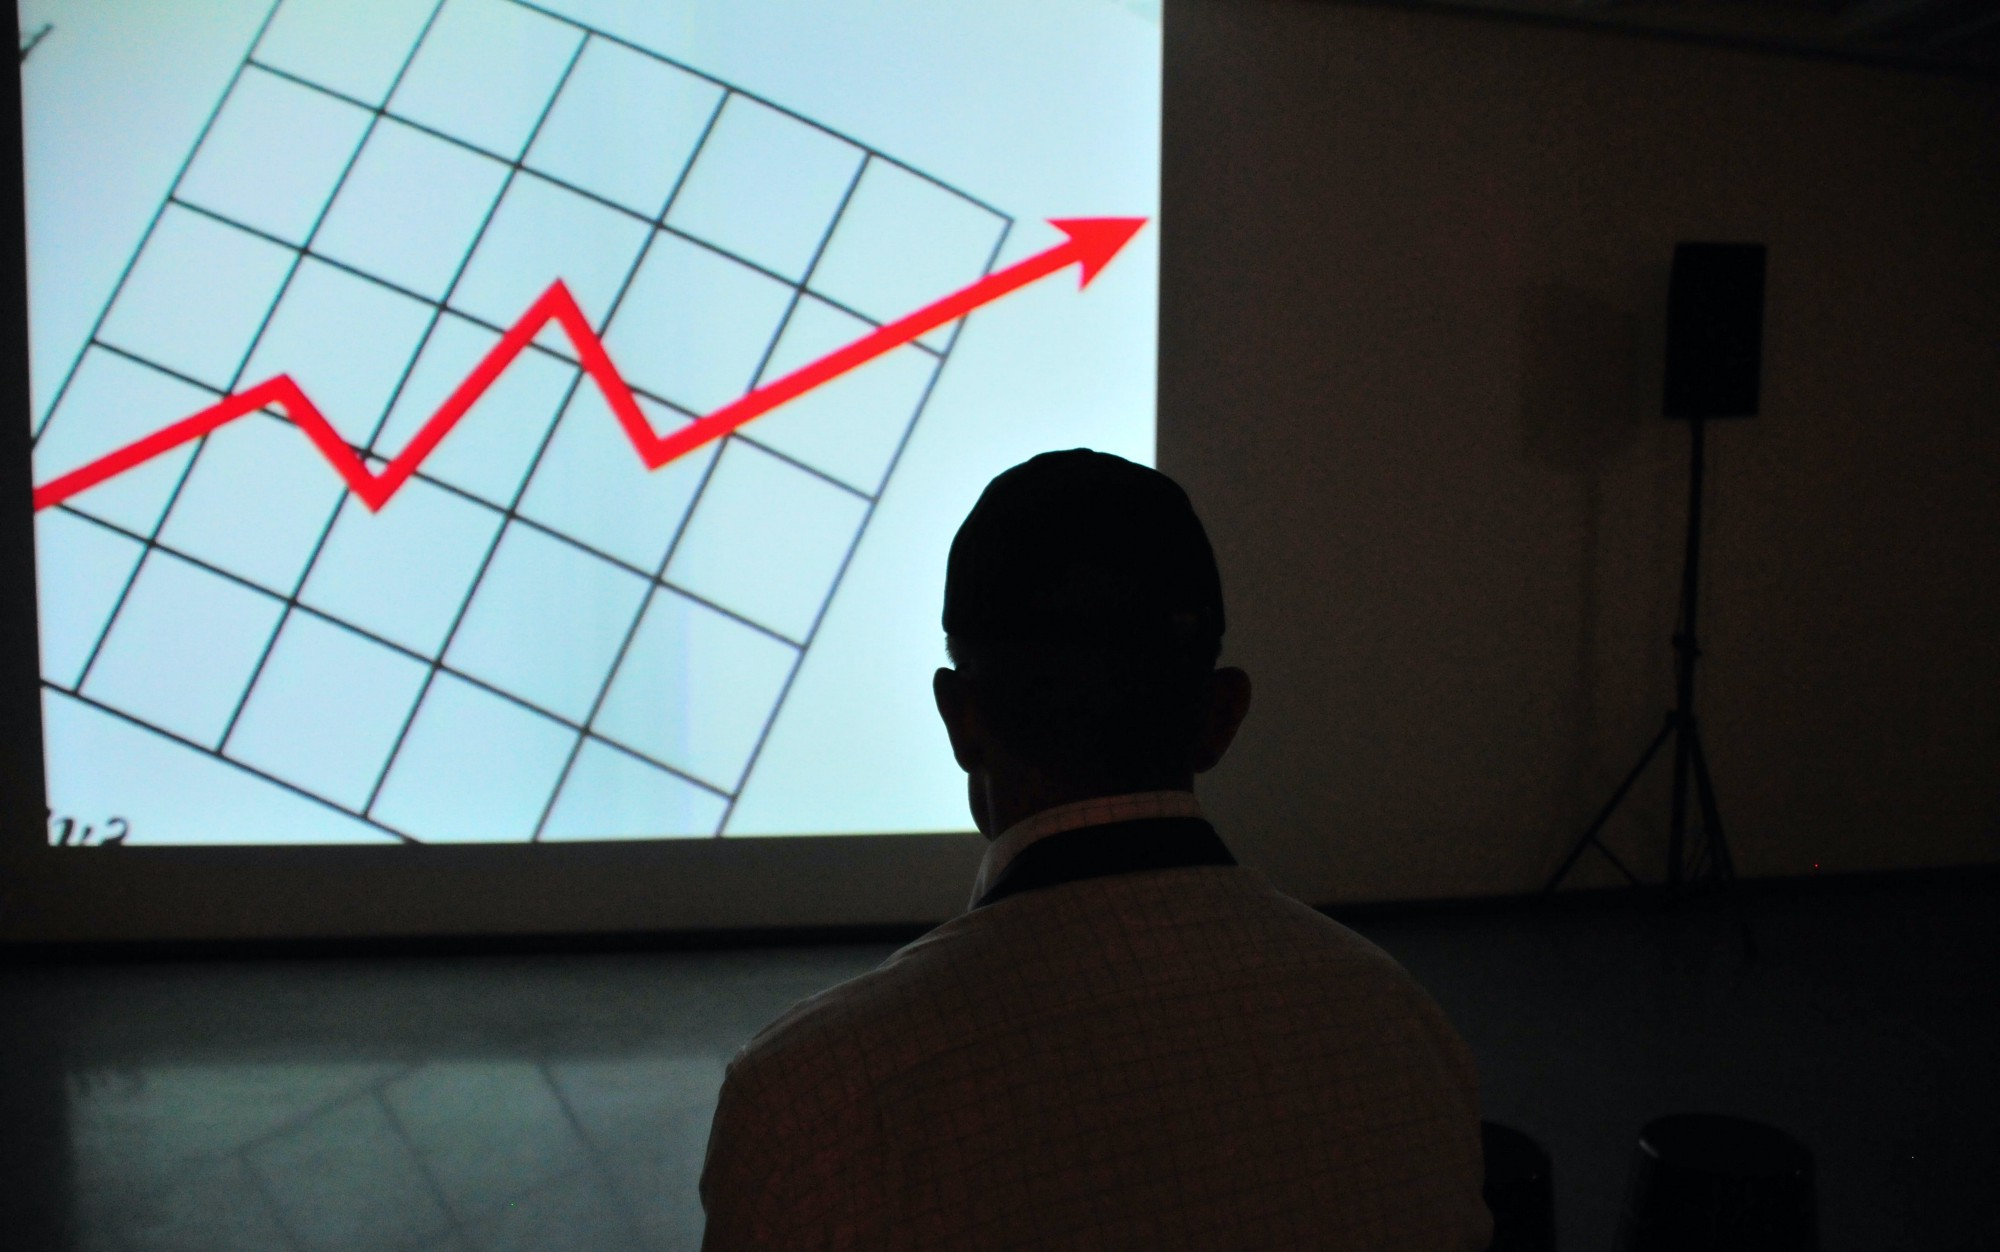 A man is looking at a screen showing a graph with a red line trending up.